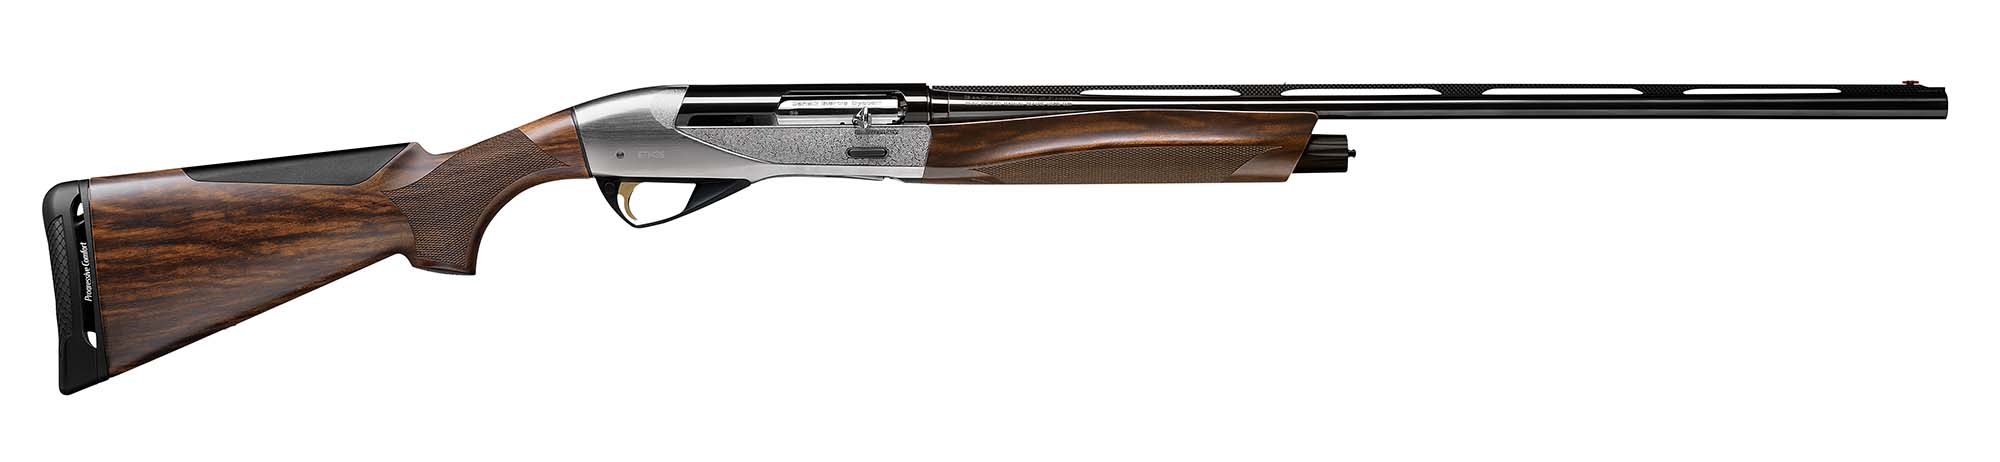 Benelli Ethos calibro 28 Magnum al Game Fair